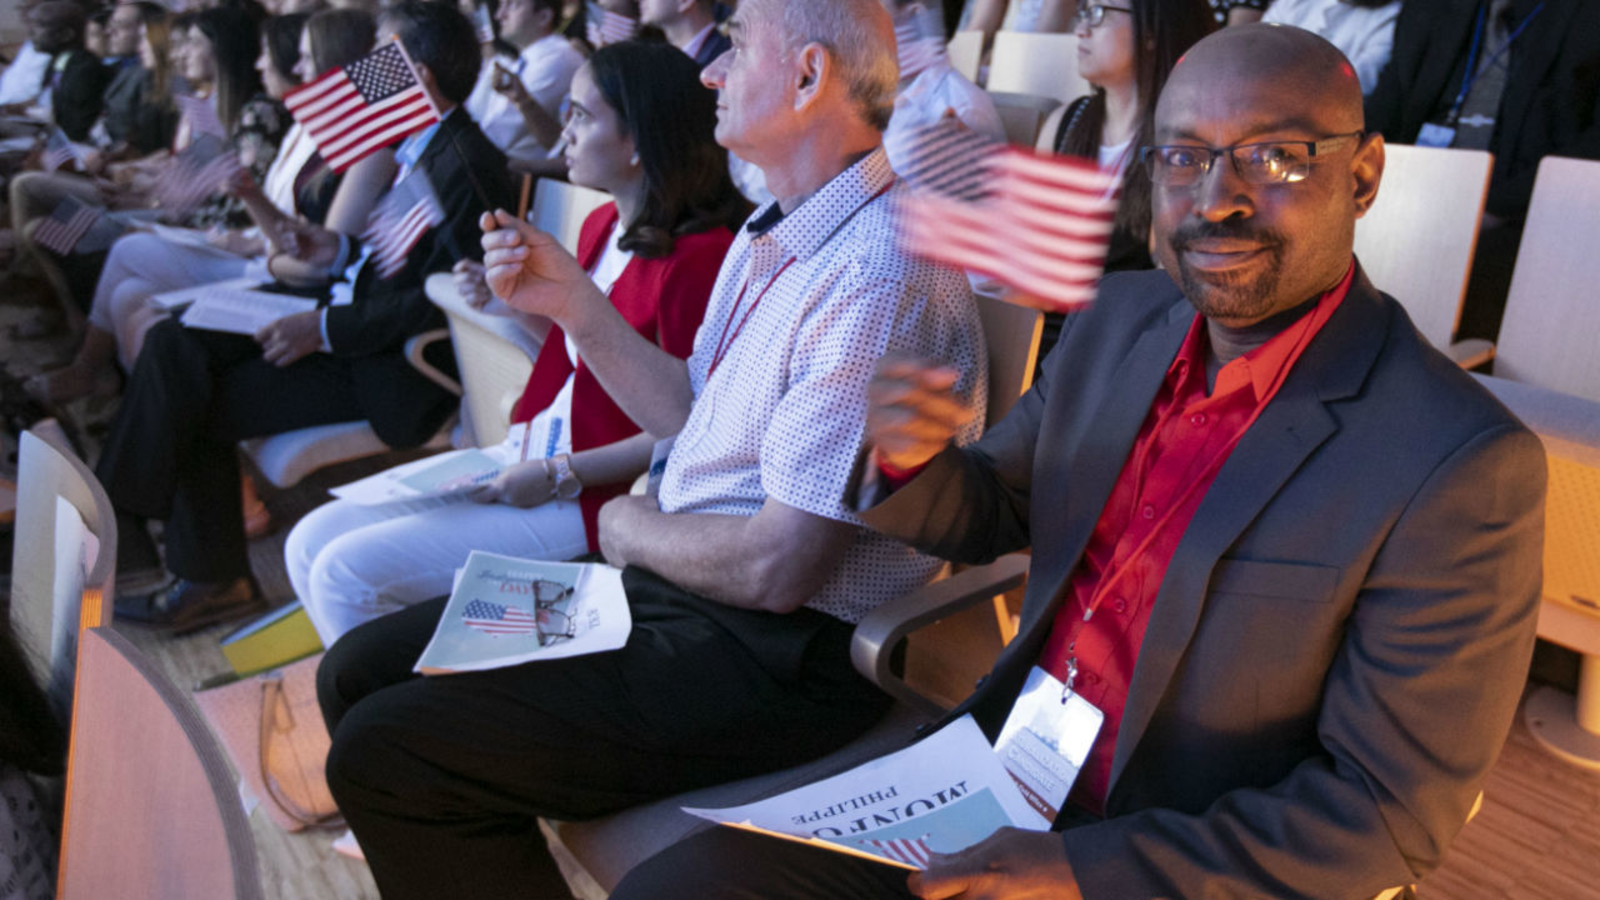 52 new US citizens sworn in at 9/11 Memorial ceremony in NYC